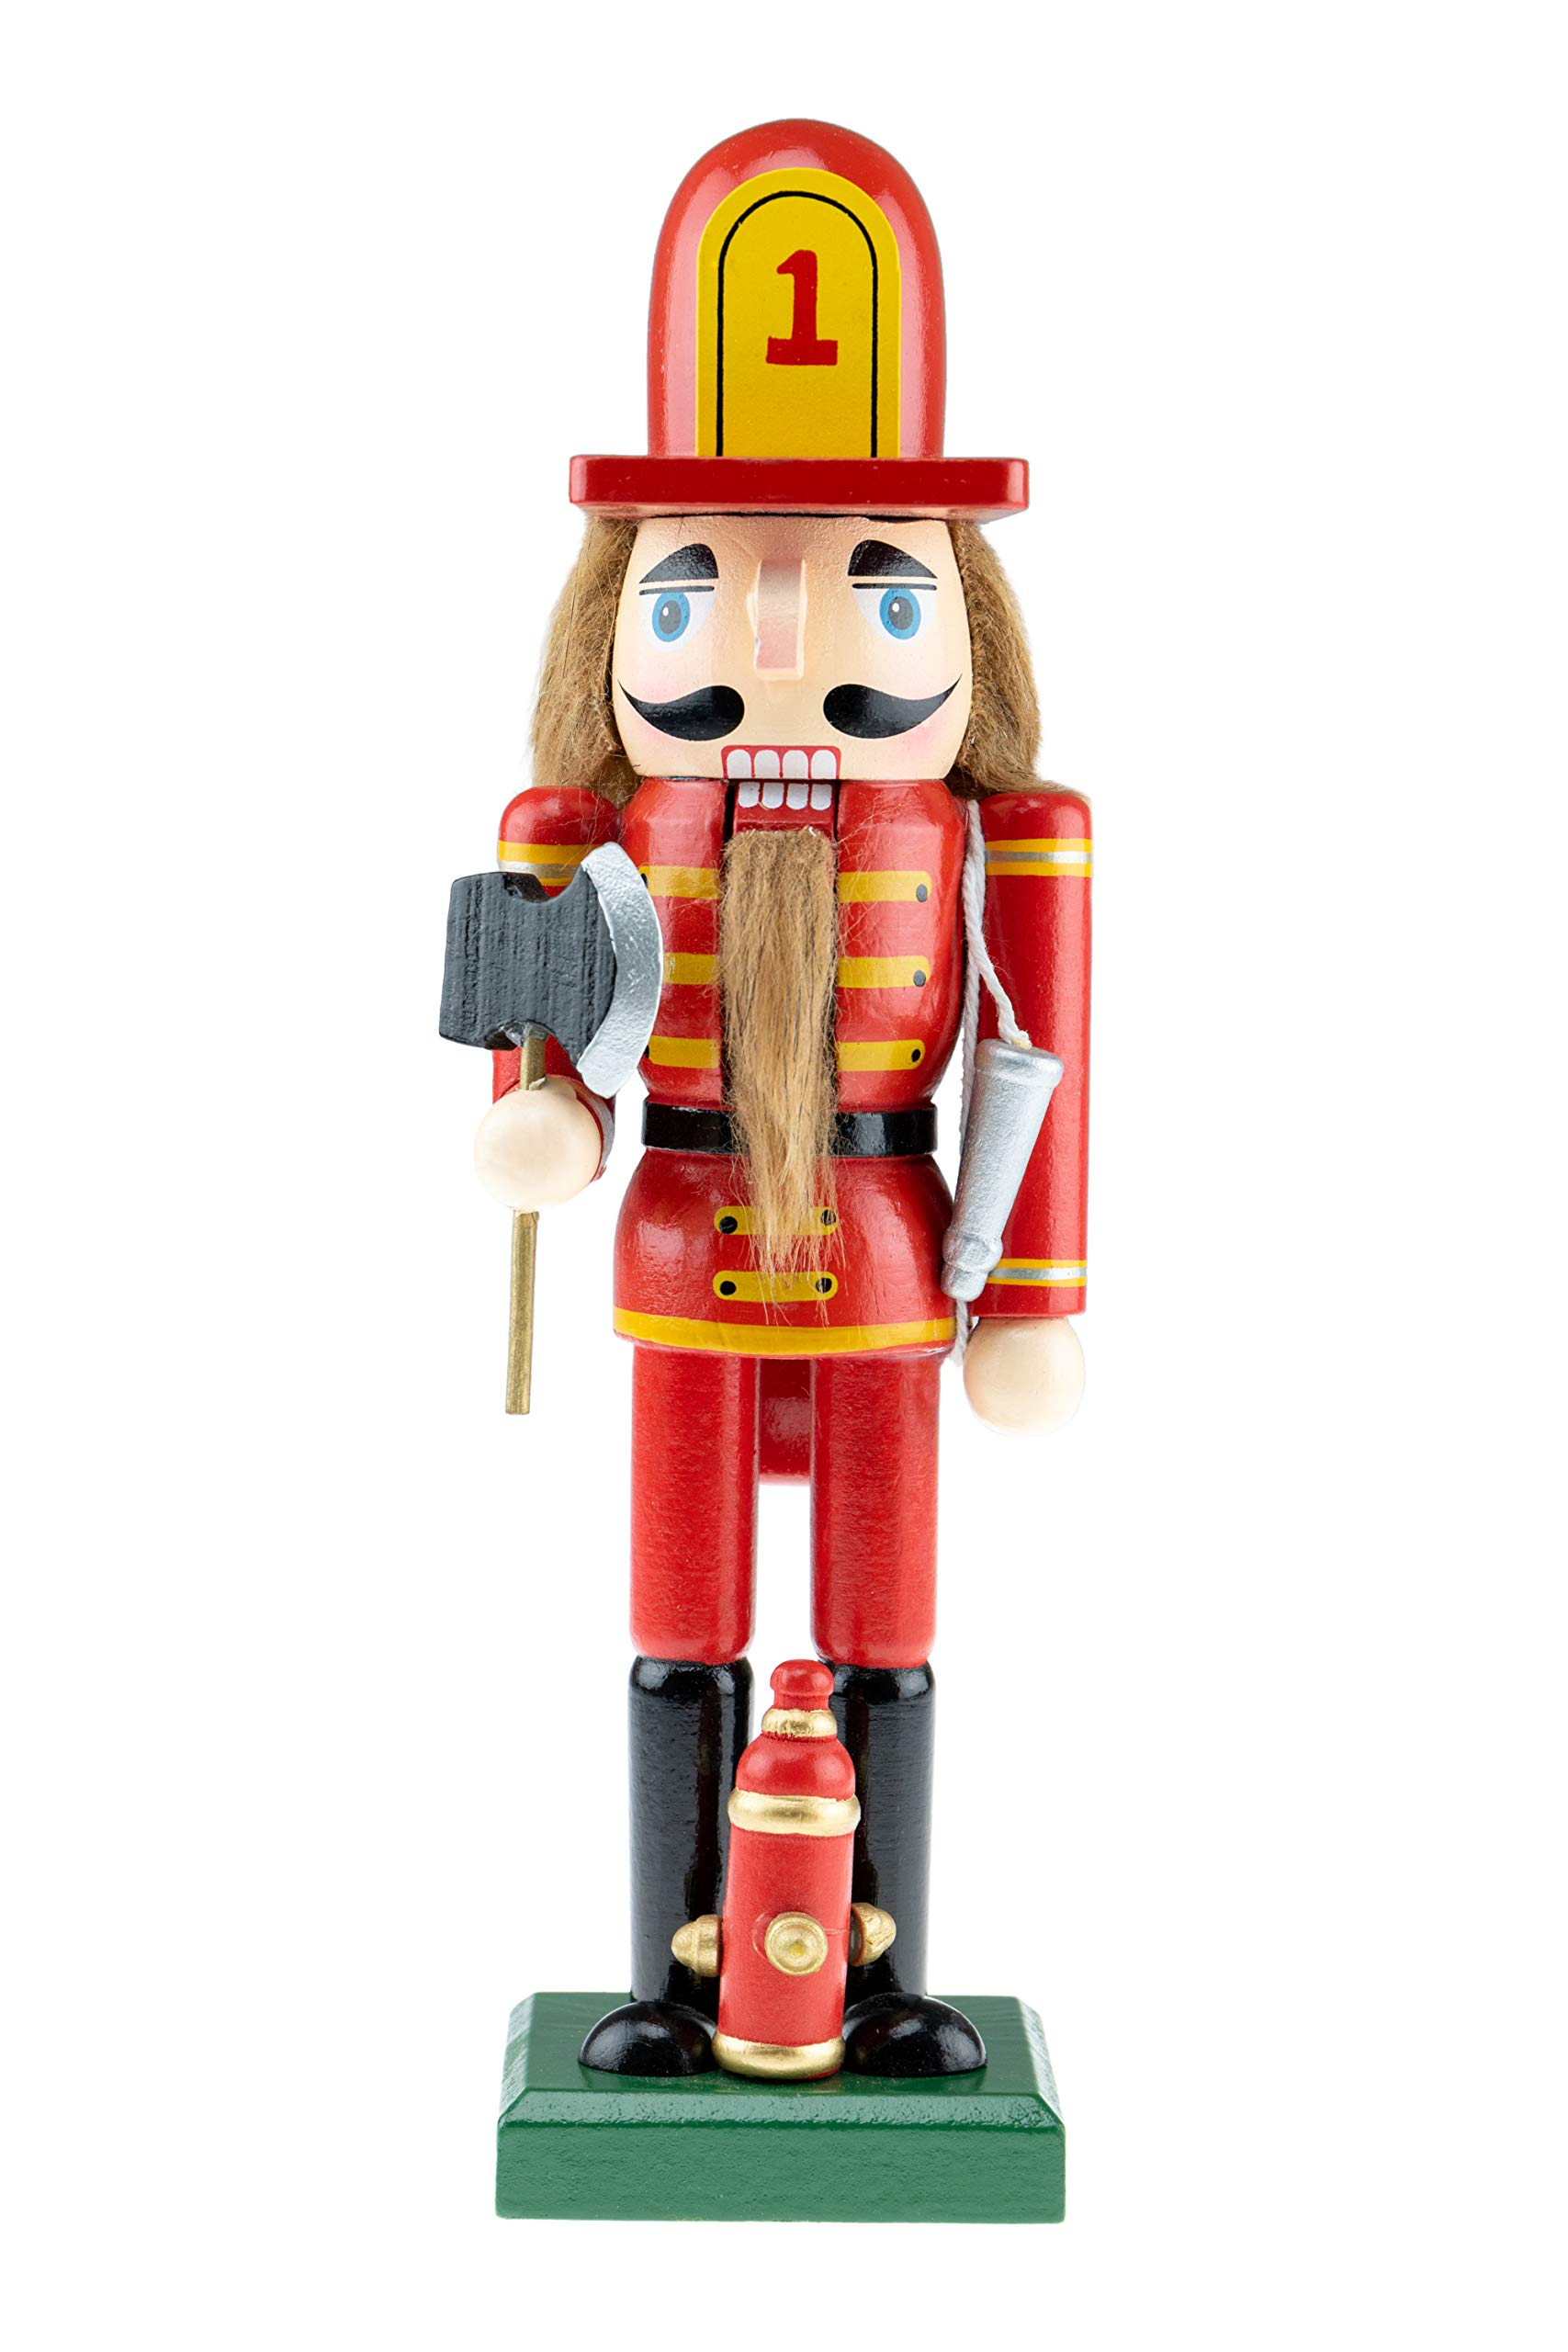 Clever Creations Wooden Fireman Nutcracker | Red and Yellow Uniform Holding Axe | Festive Traditional Christmas Decor | Great for Any Holiday Collection | 10'' Tall Perfect for Shelves and Tables